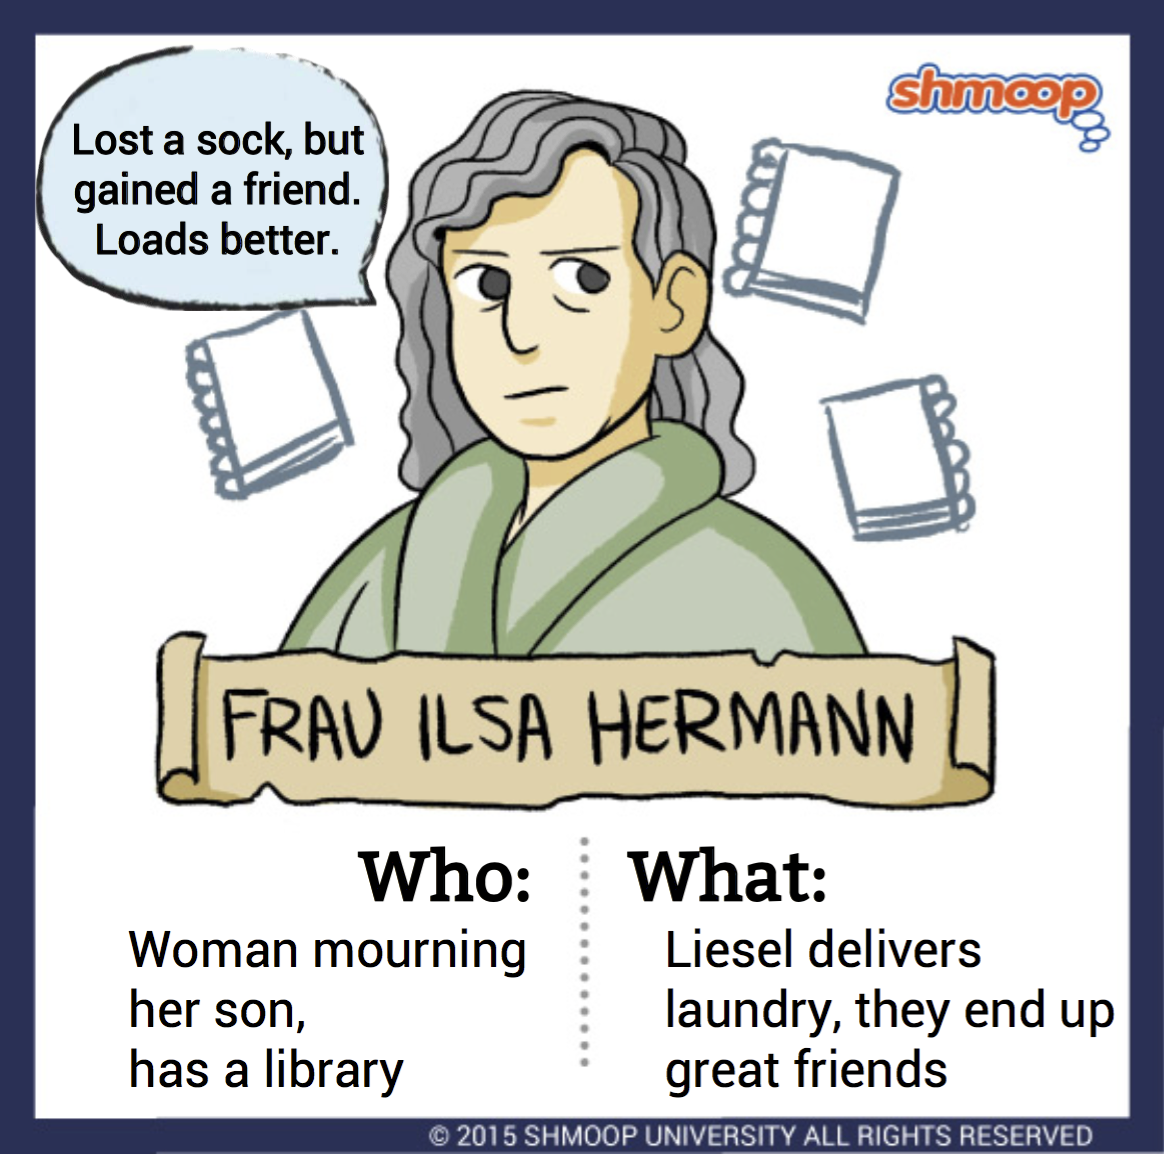 frau ilsa hermann in the book thief chart frau ilsa hermann